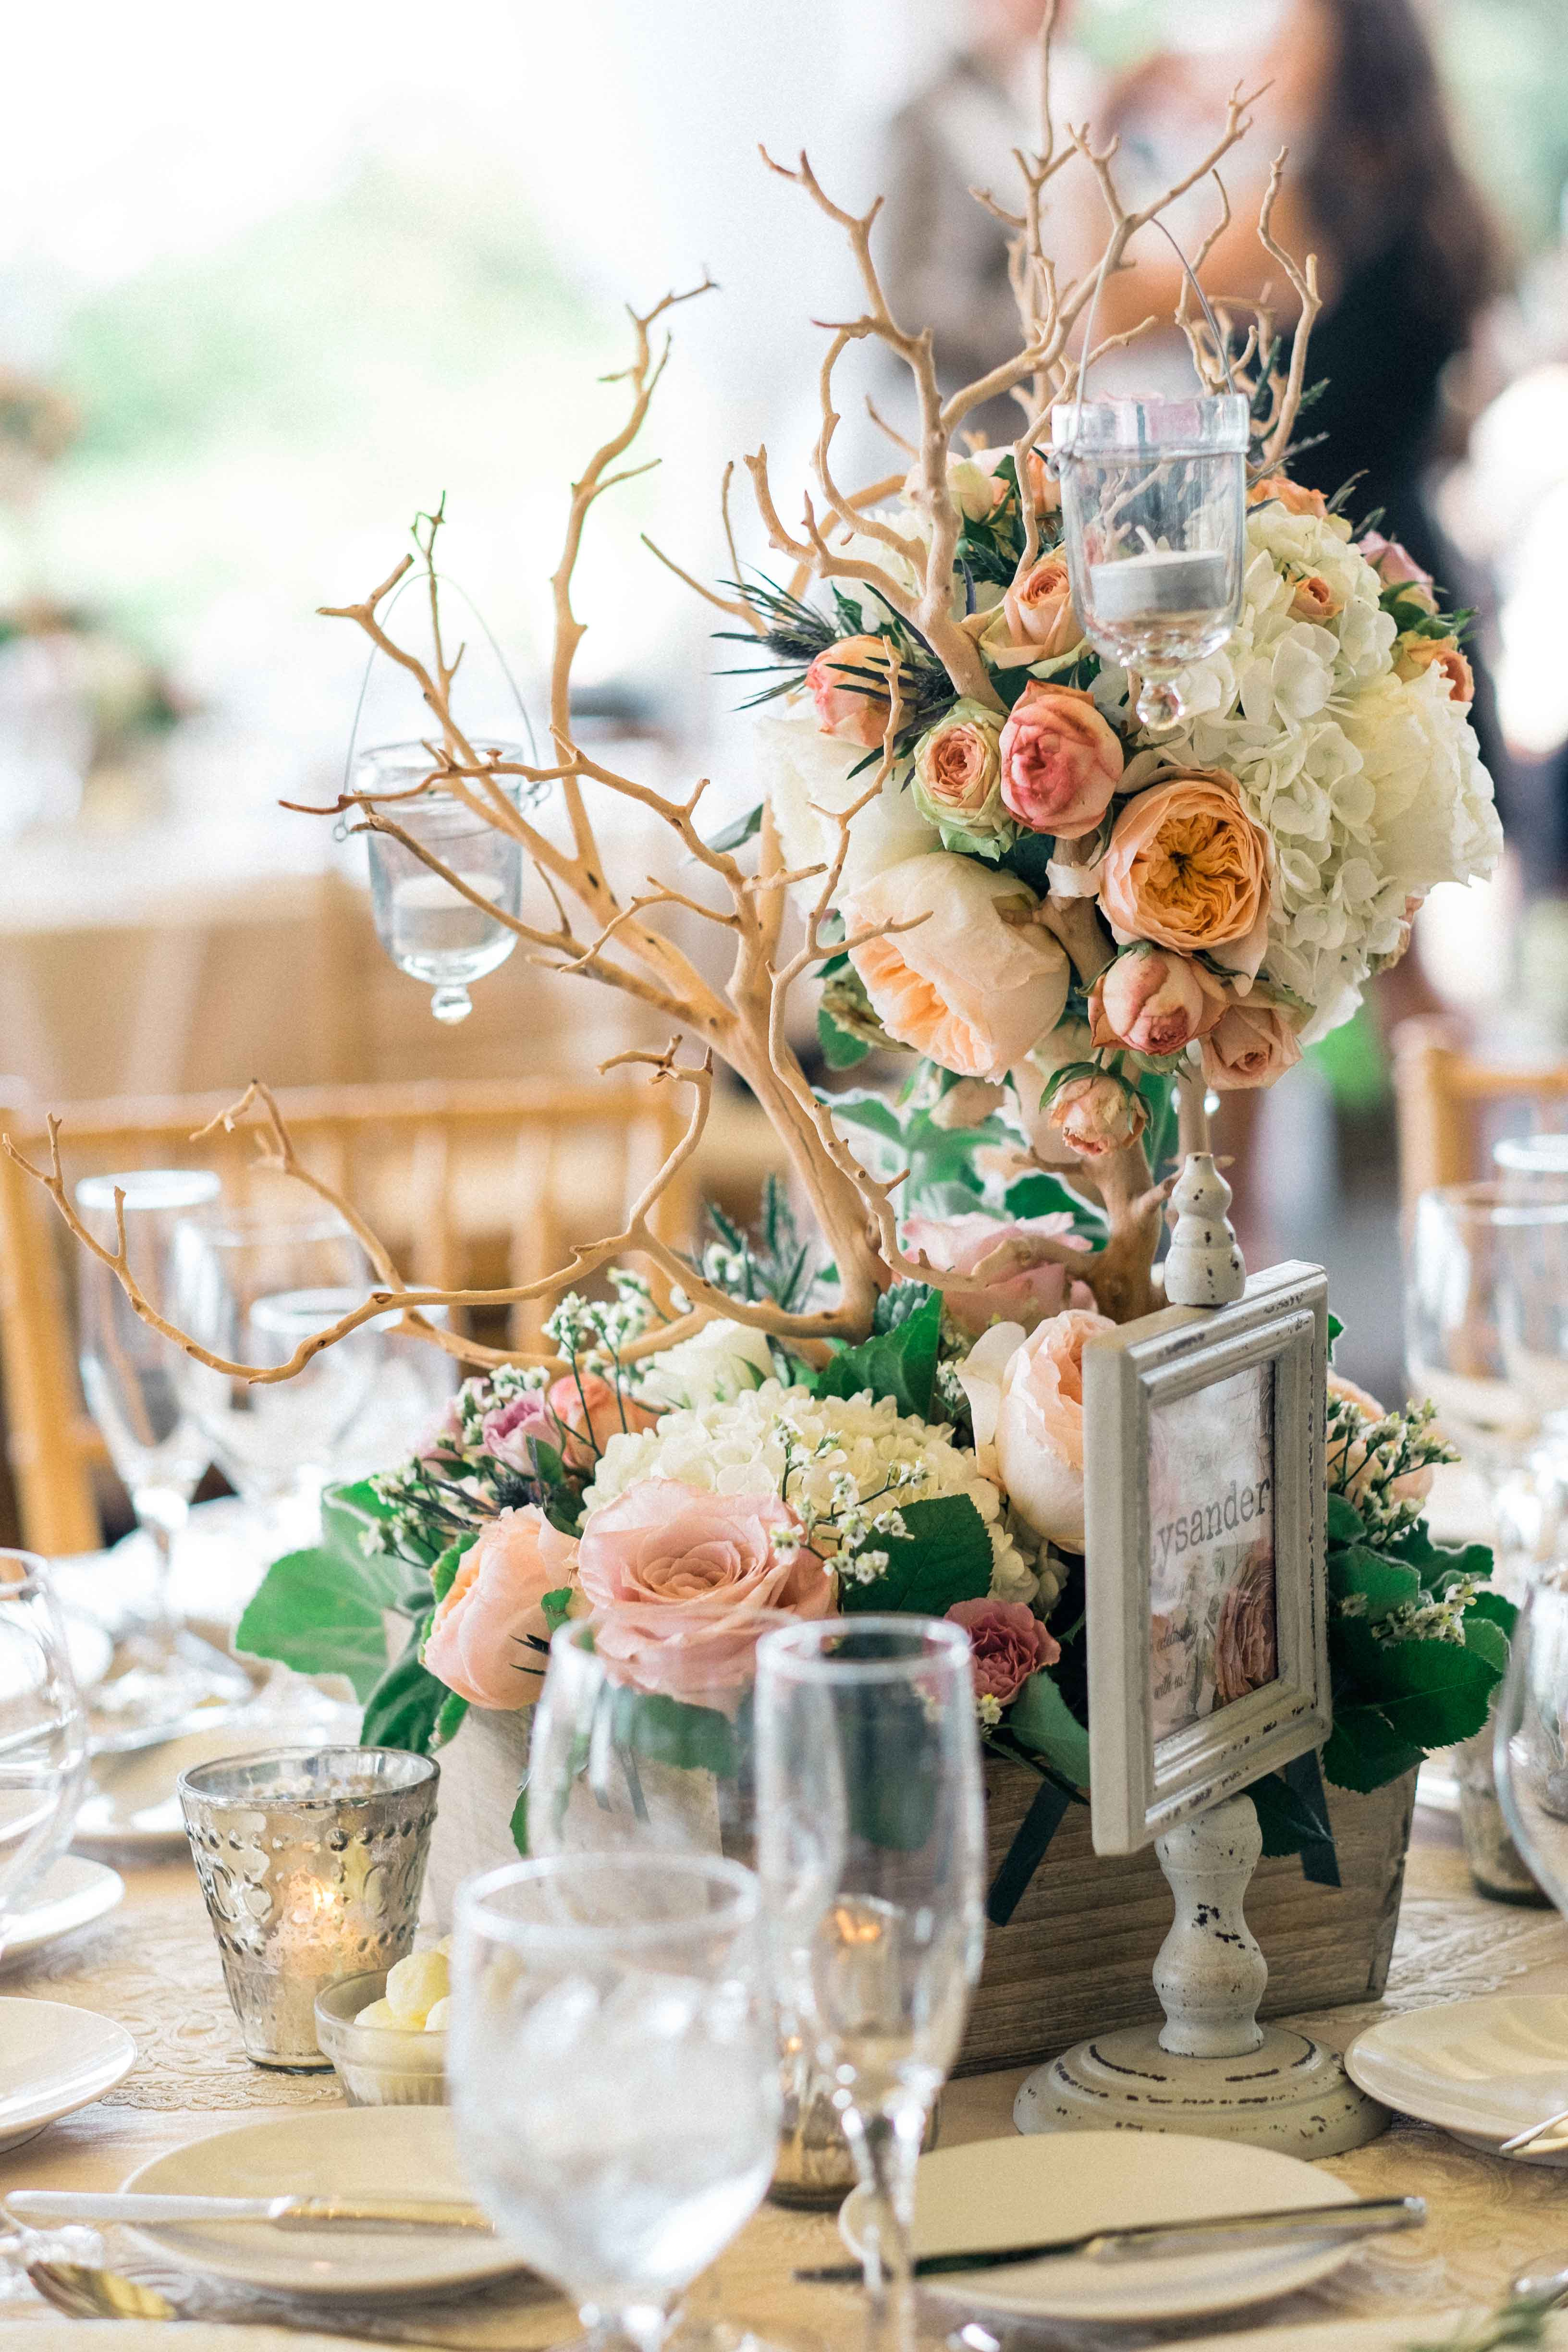 7 Planter Boxes to Use for Your Rustic Wedding Reception Centerpieces  Inside Weddings